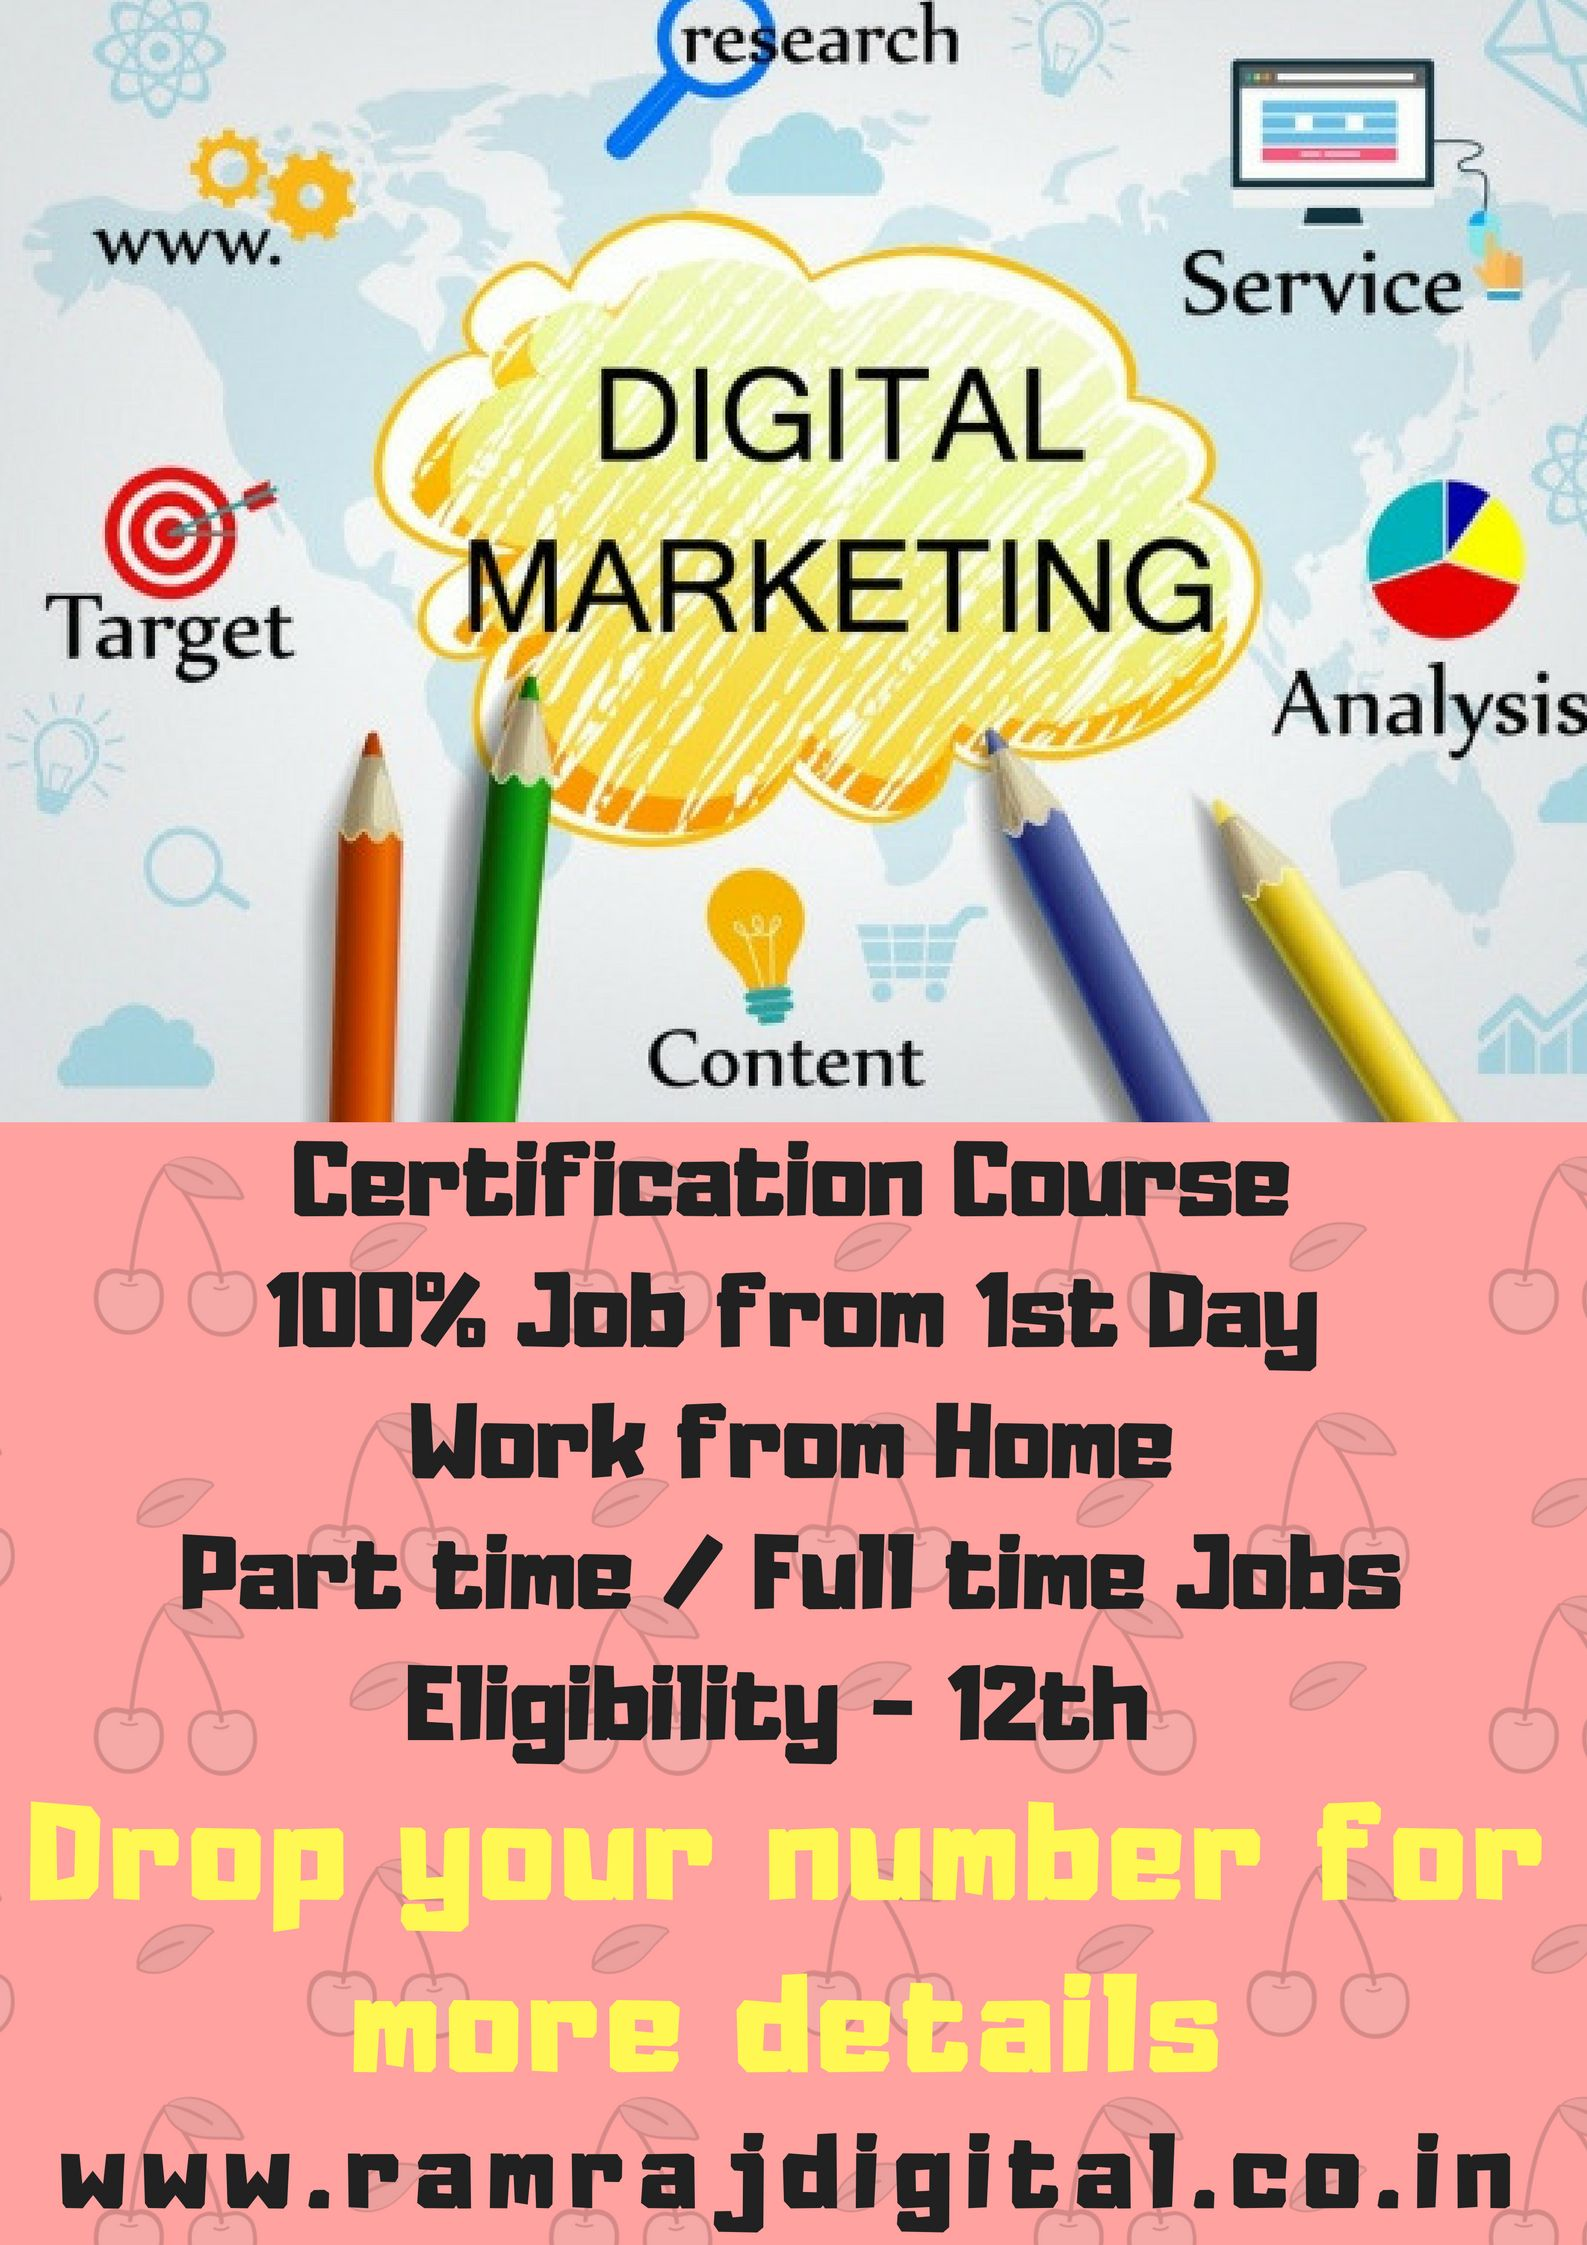 Digital marketing course ➕ Complemantary job from 12st day Ramraj ...